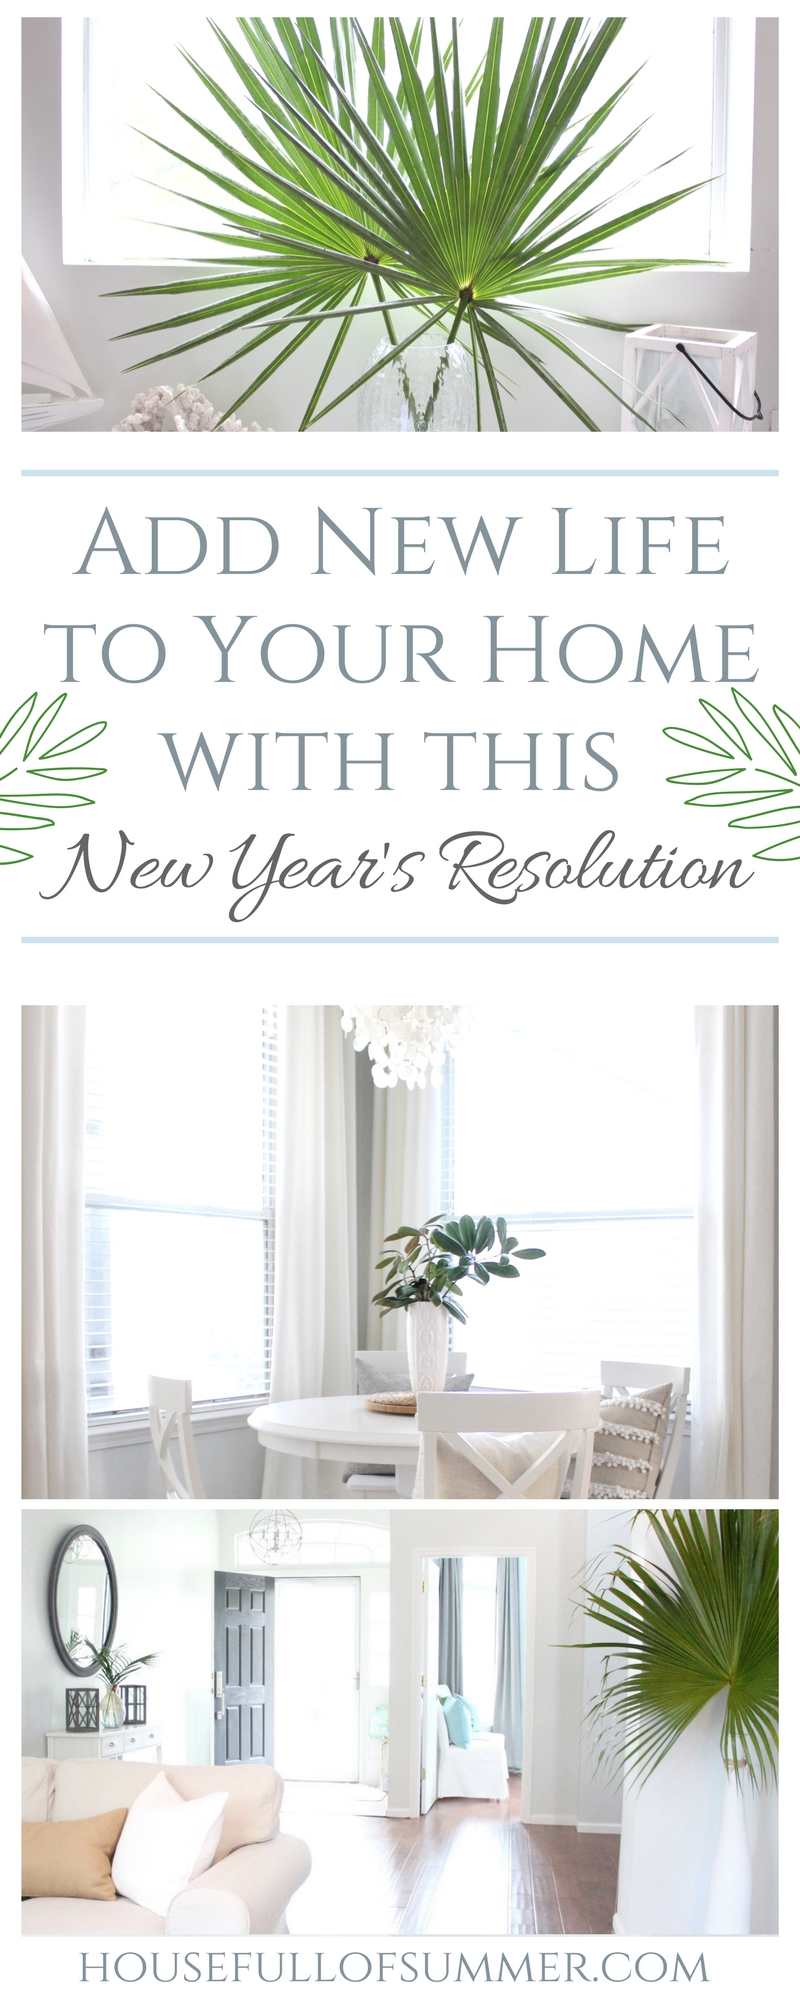 Add New Life to Your Home With This New Year's Resolution | House Full of Summer blog adding greenery to your home, decorating with plants, fronds, trimmings, winter decor, home decor, coastal bedroom tropical bedroom